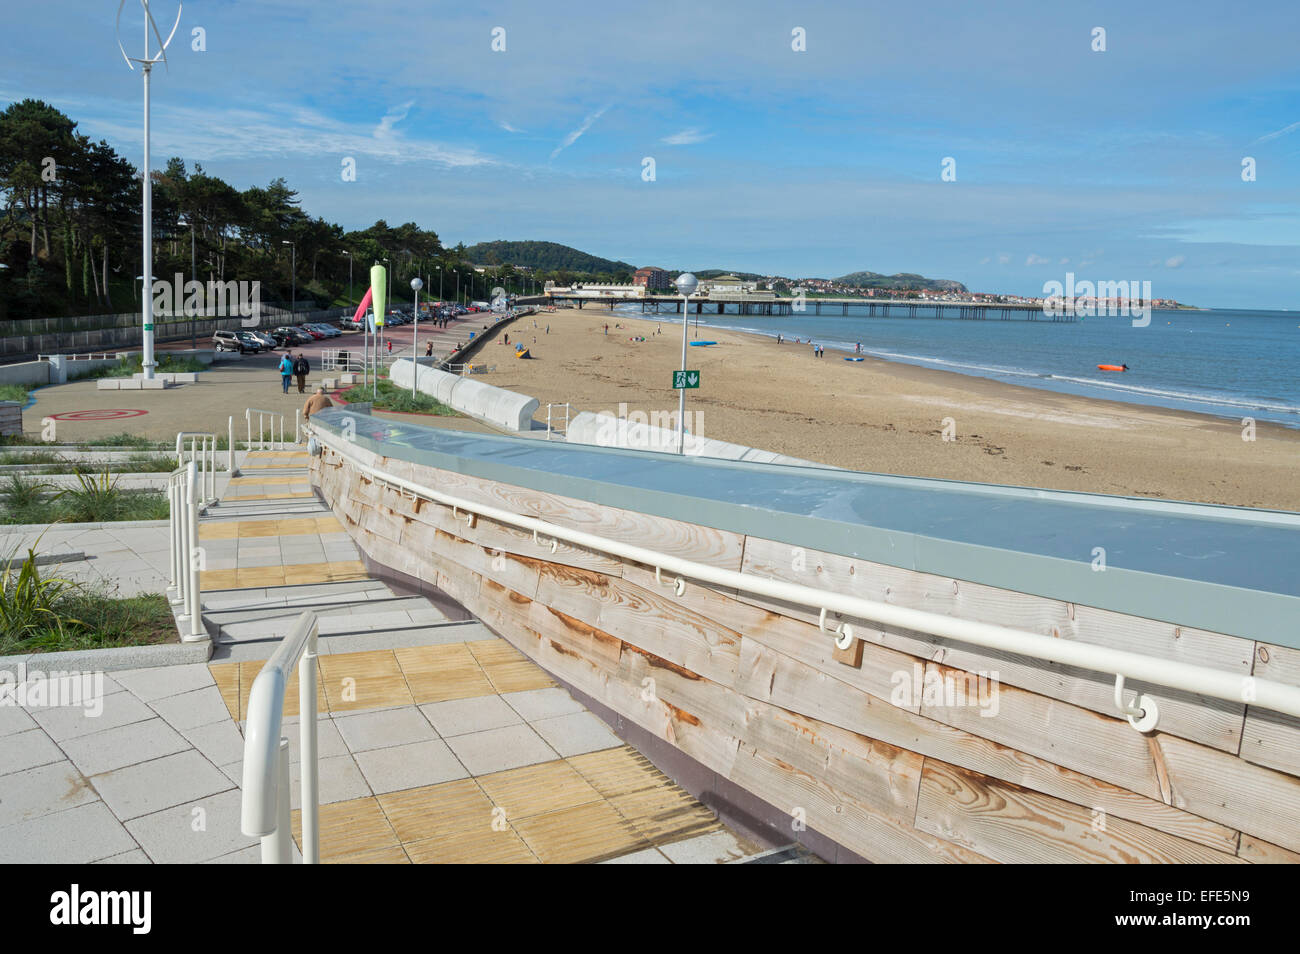 Rhos on sea, Colwyn Bay, seafront, beach, North Wales, uk - Stock Image